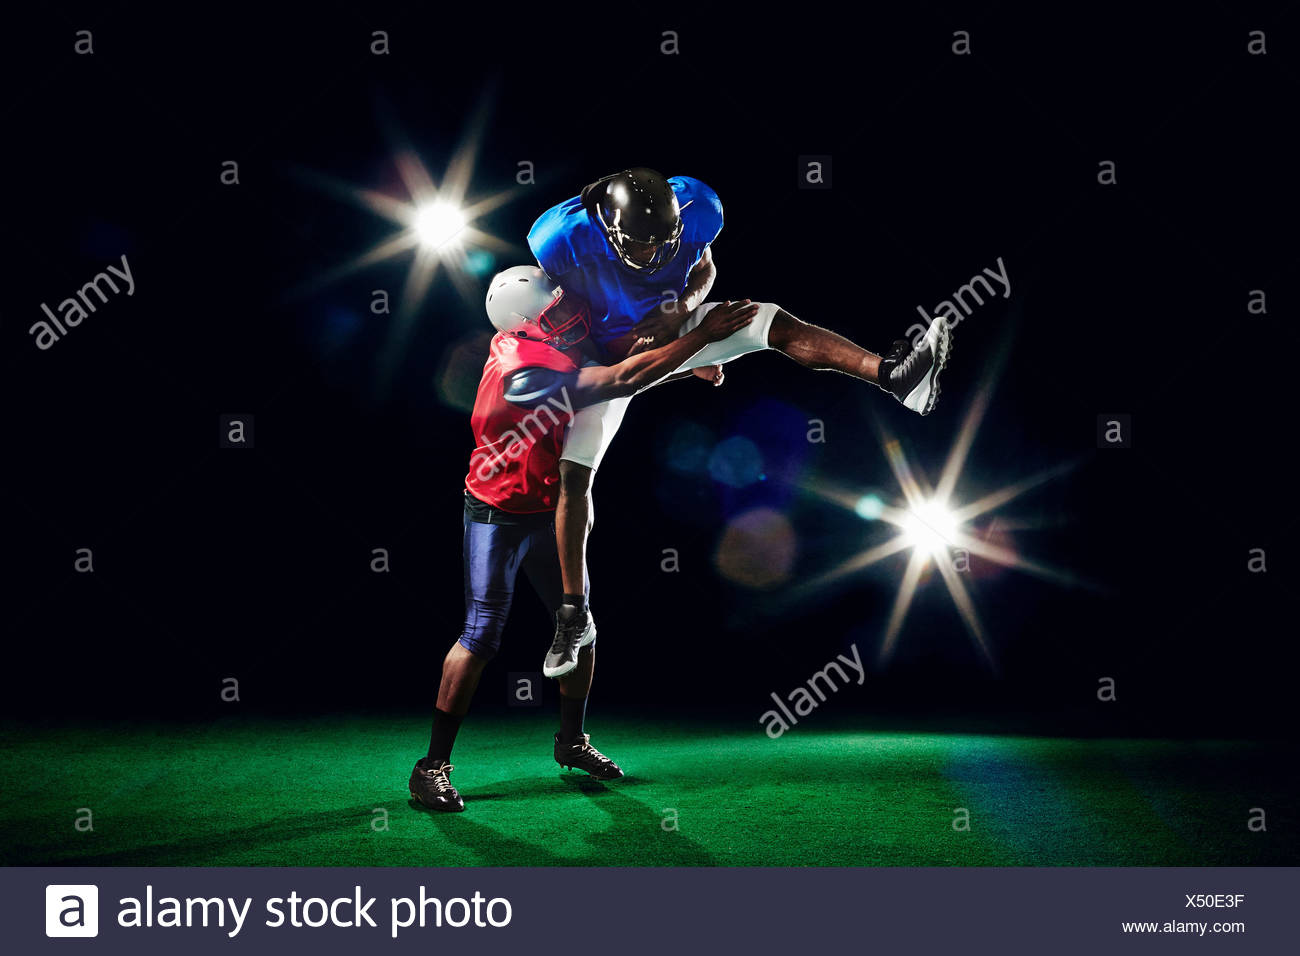 American football players jumping with ball Stock Photo